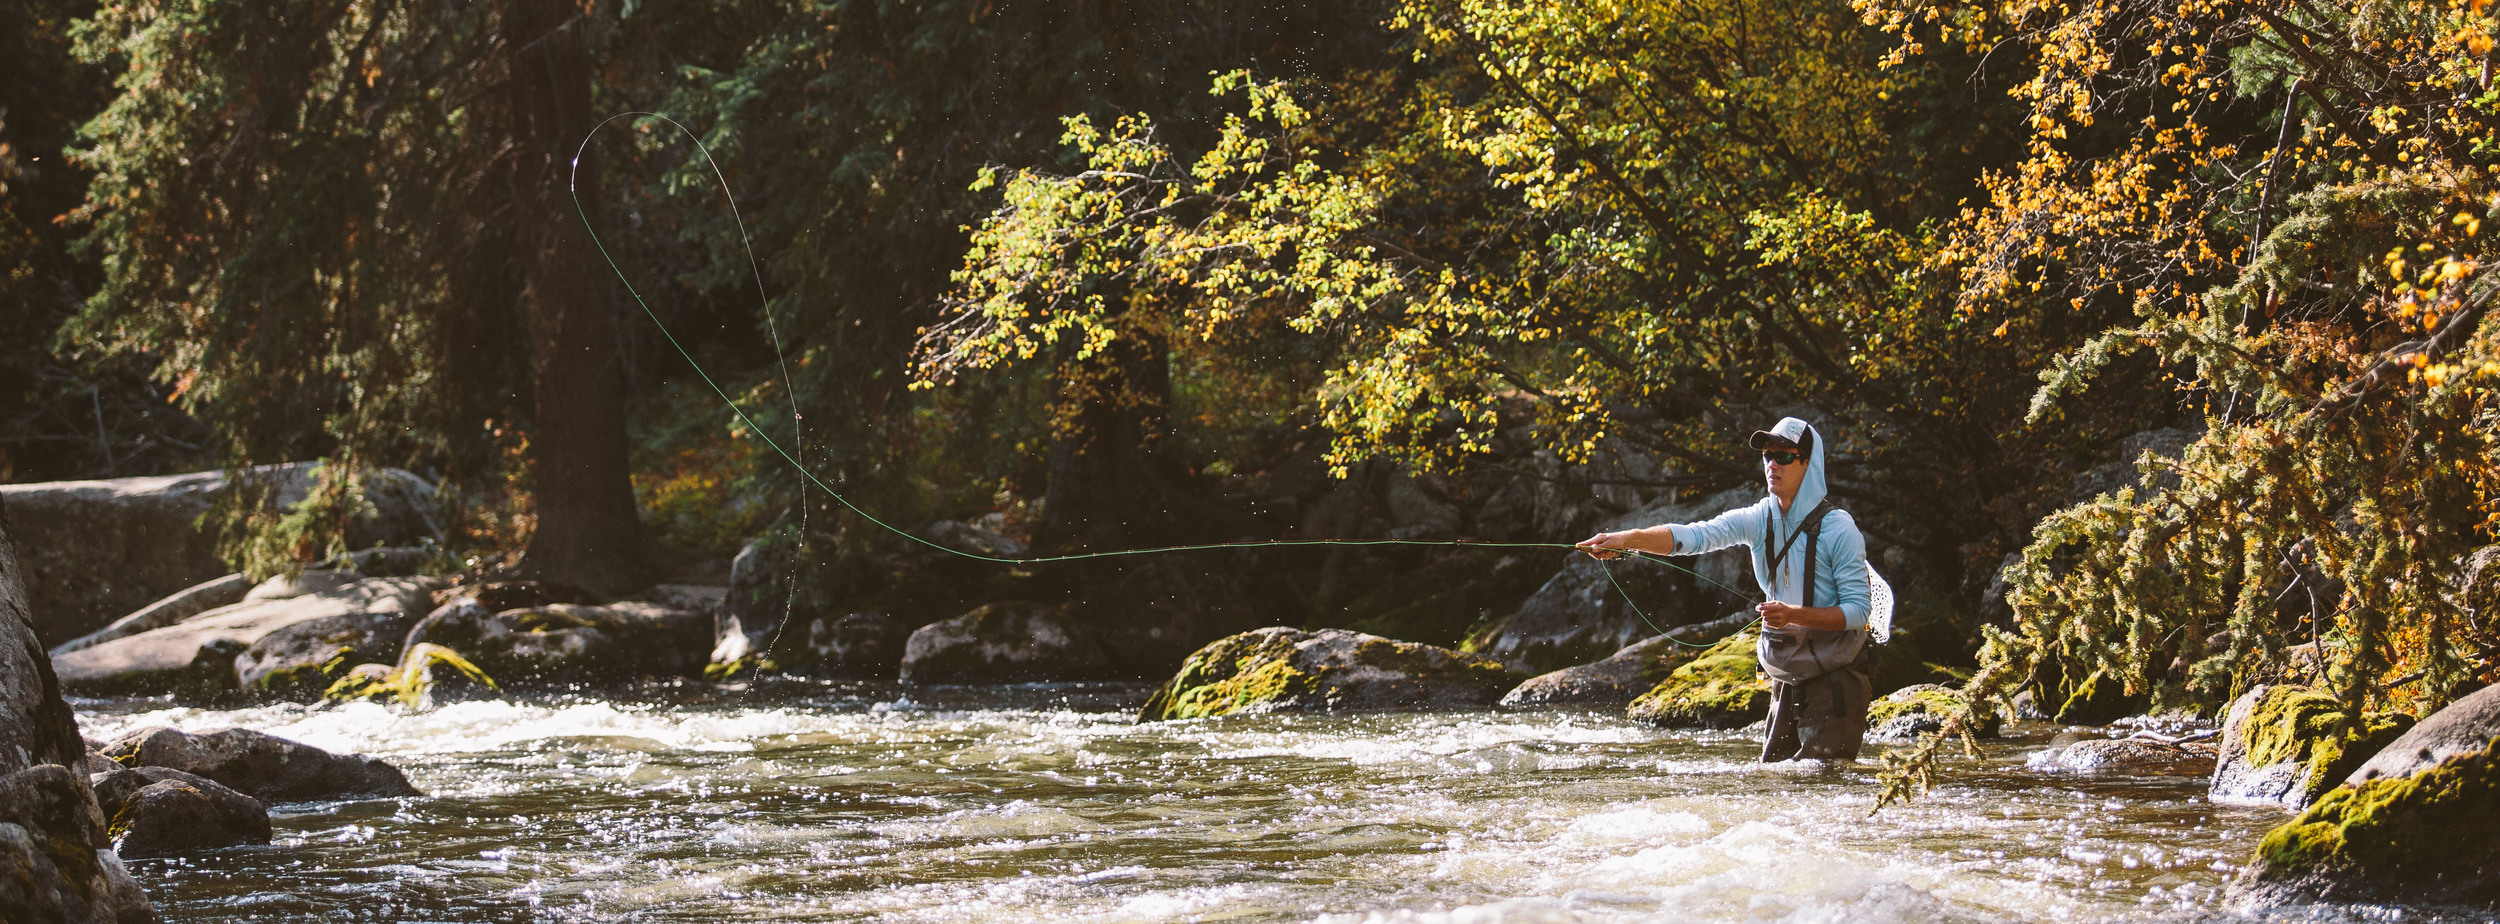 Flyfishing with Mikey-2.jpg